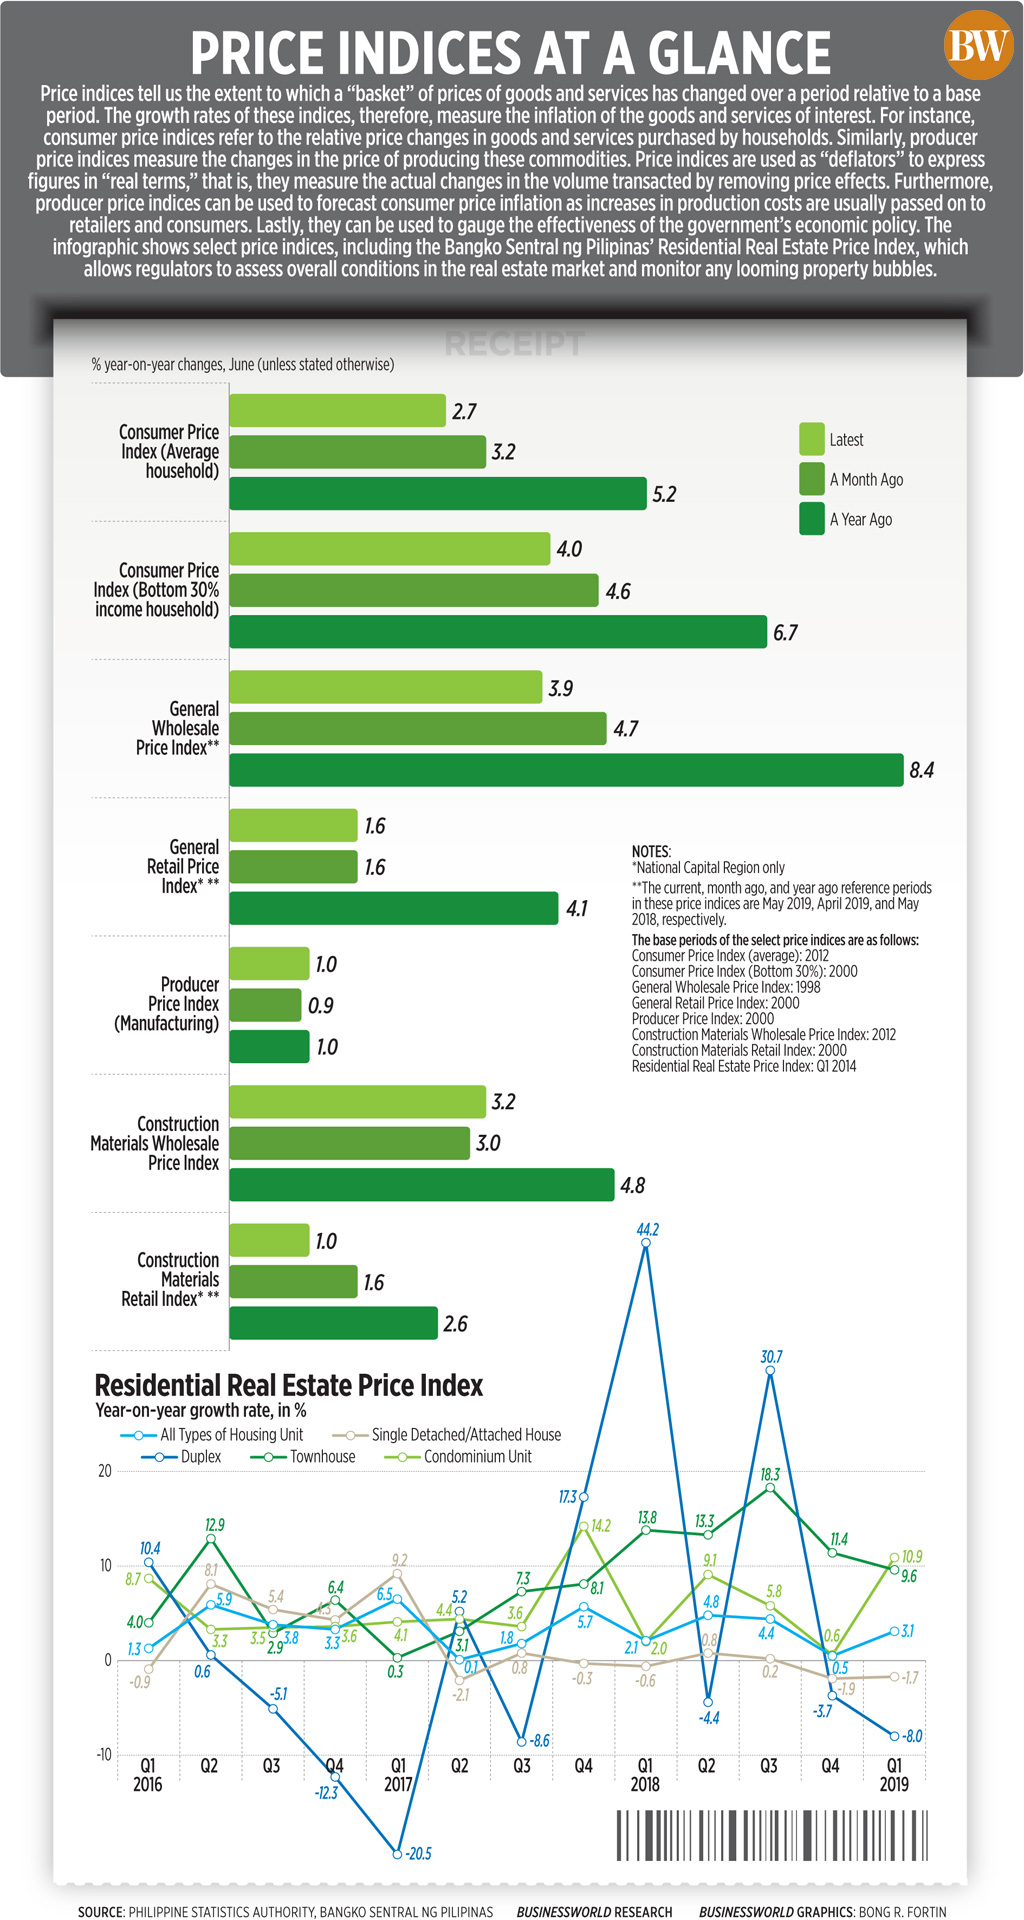 Price indices at a glance